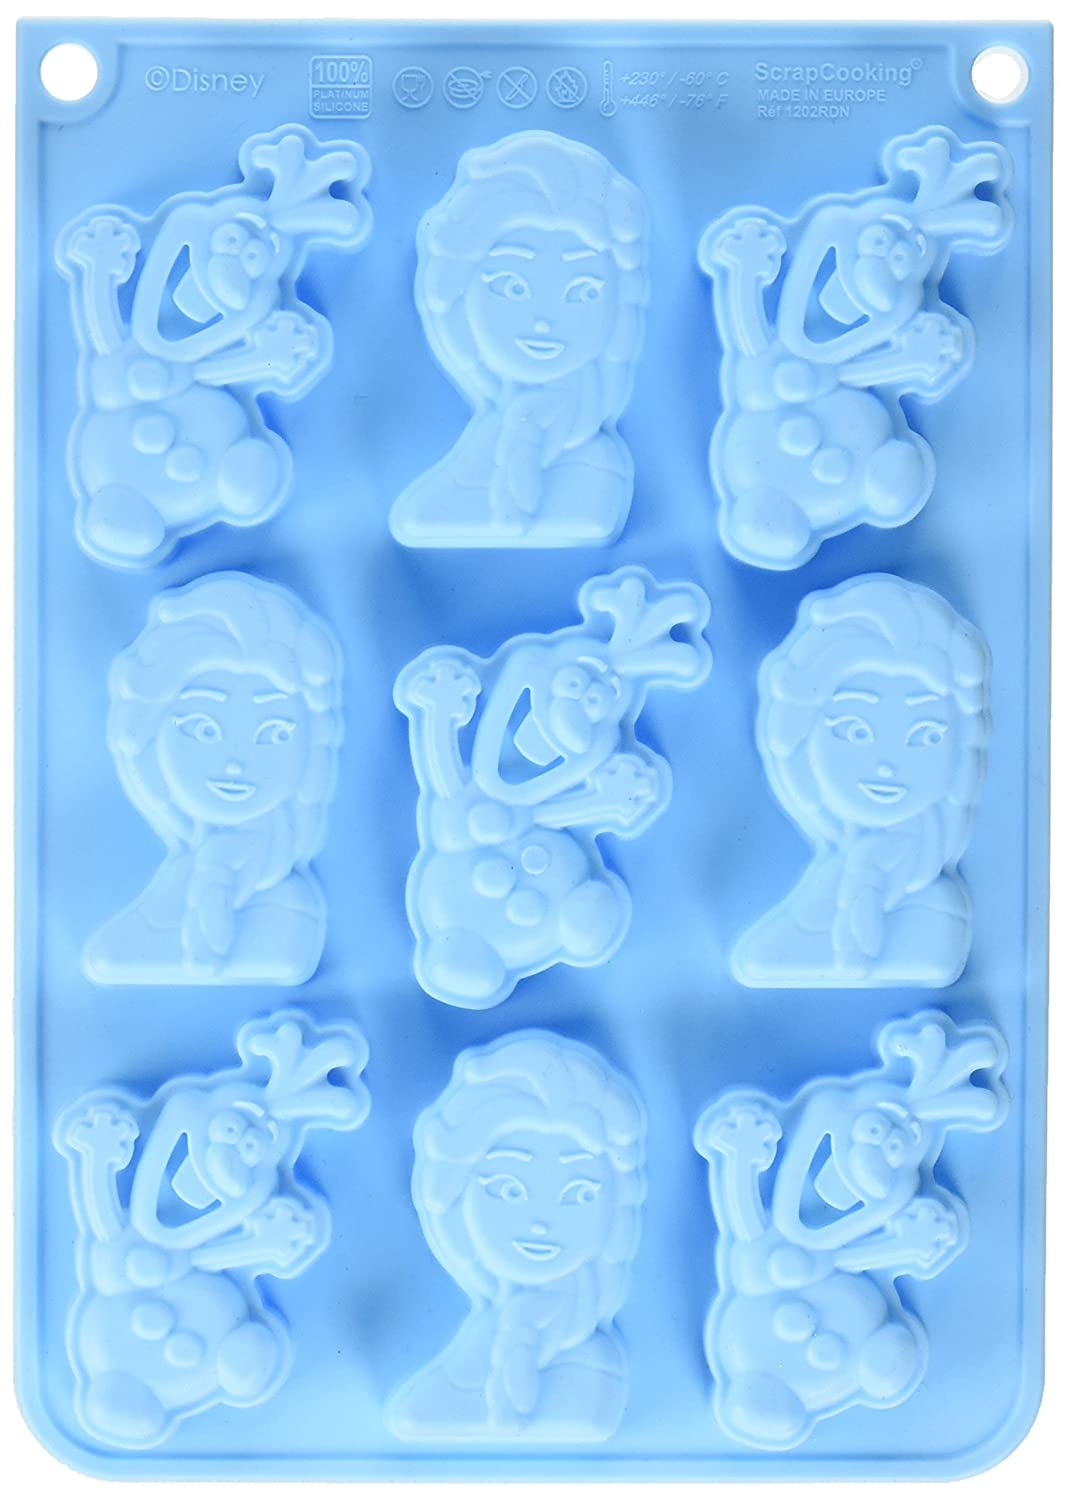 ScrapCooking Disney Frozen & Olaf Silicone Mould, Blue 1202RDN